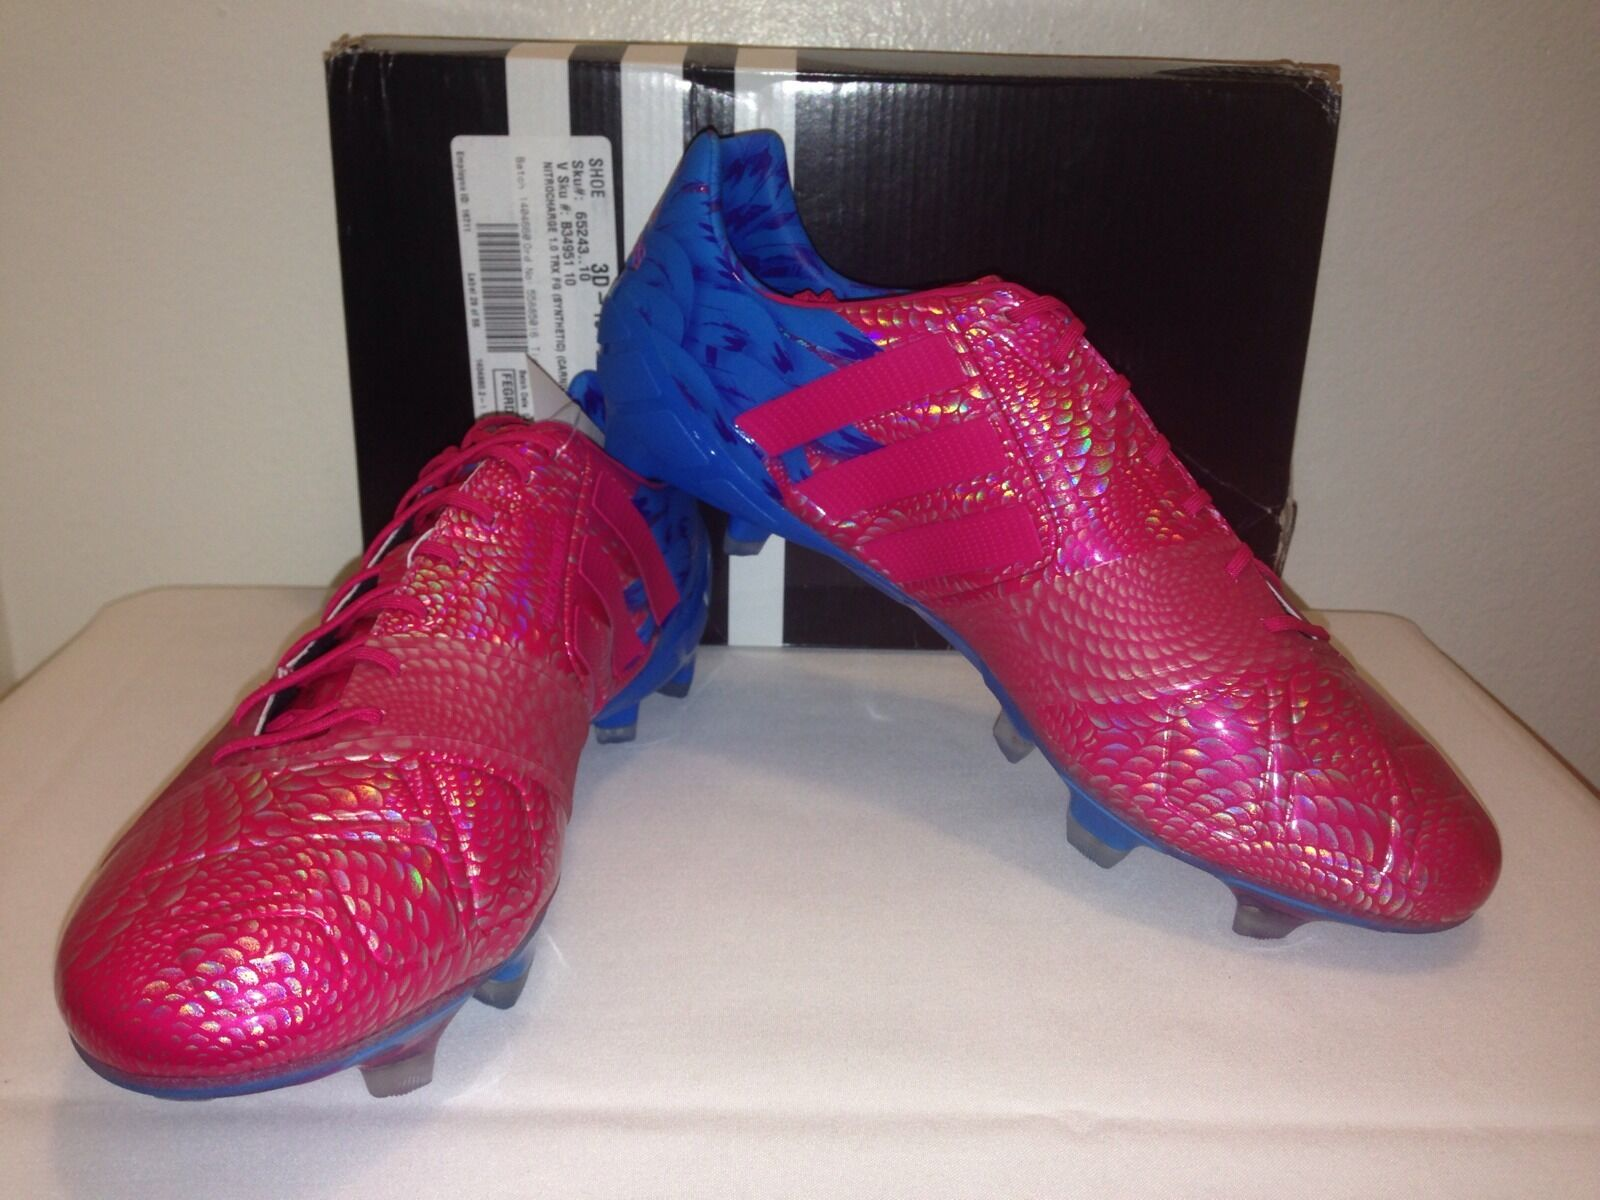 Adidas Nitrocharge 1.0 World Cup Limited Edition Carnaval FG Soccer Cleats Sz 10